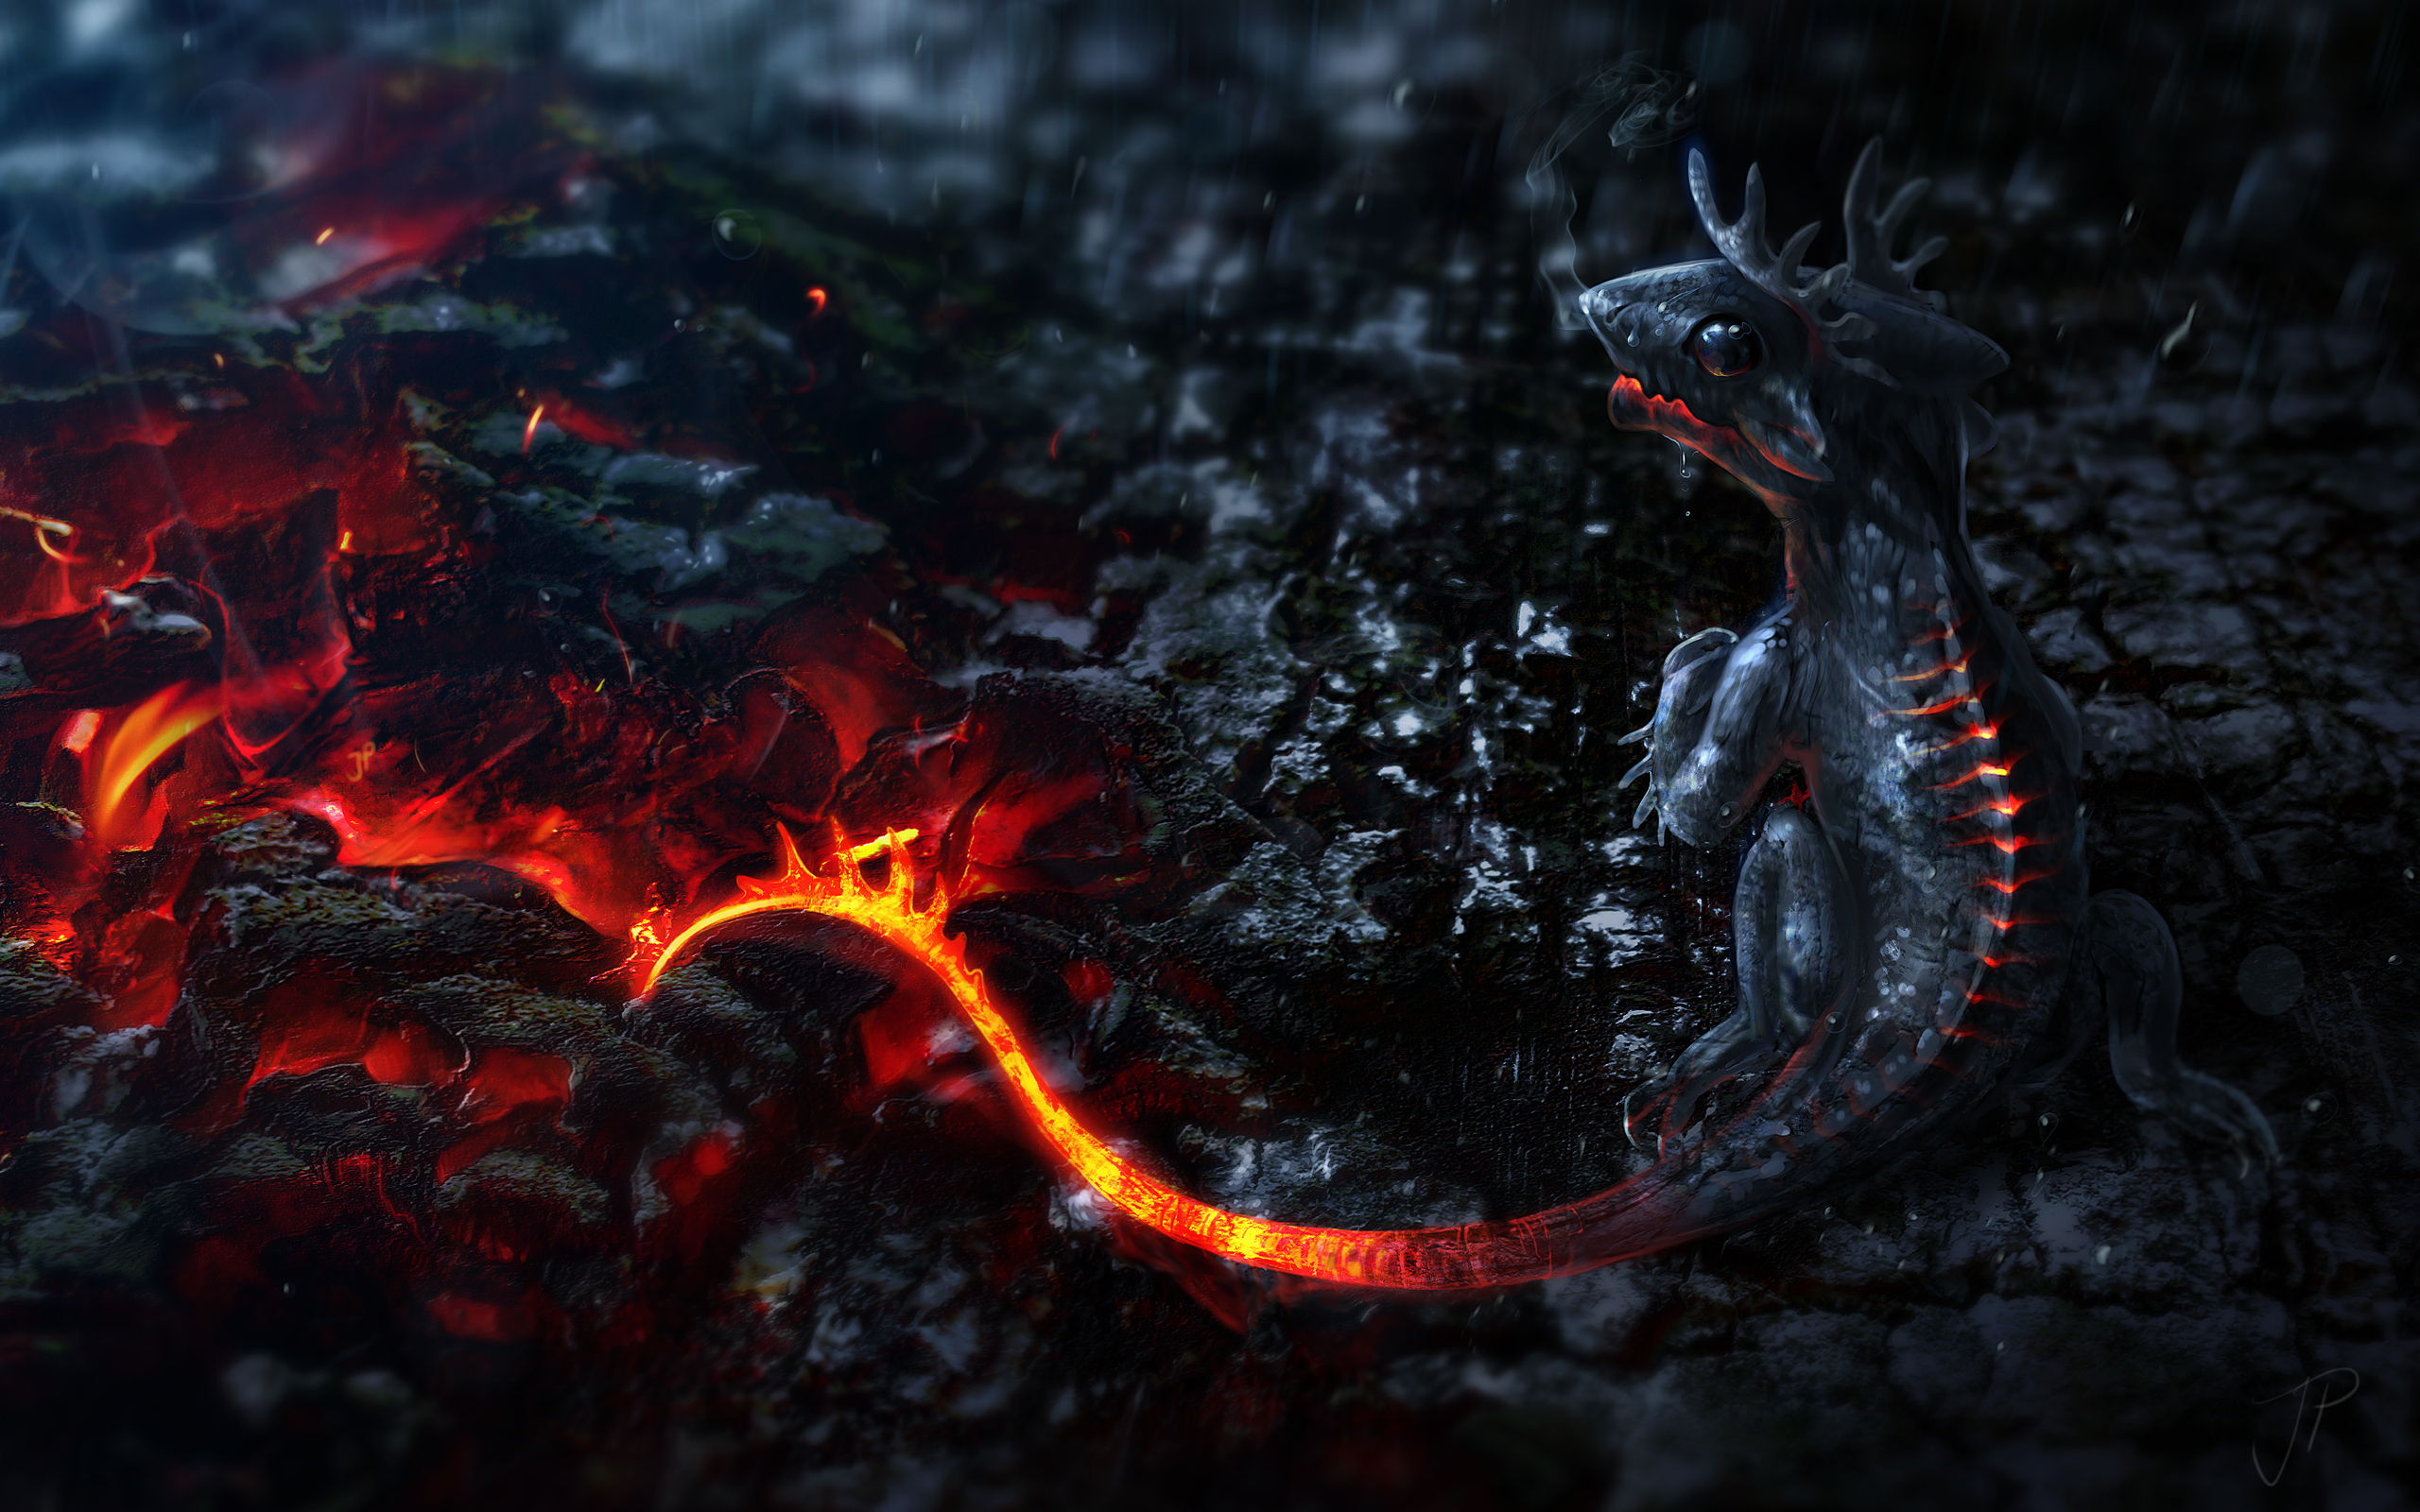 Mythical Creatures Artwork Small Dragons Tails Fire Lava Smoke Magma 2560x1600